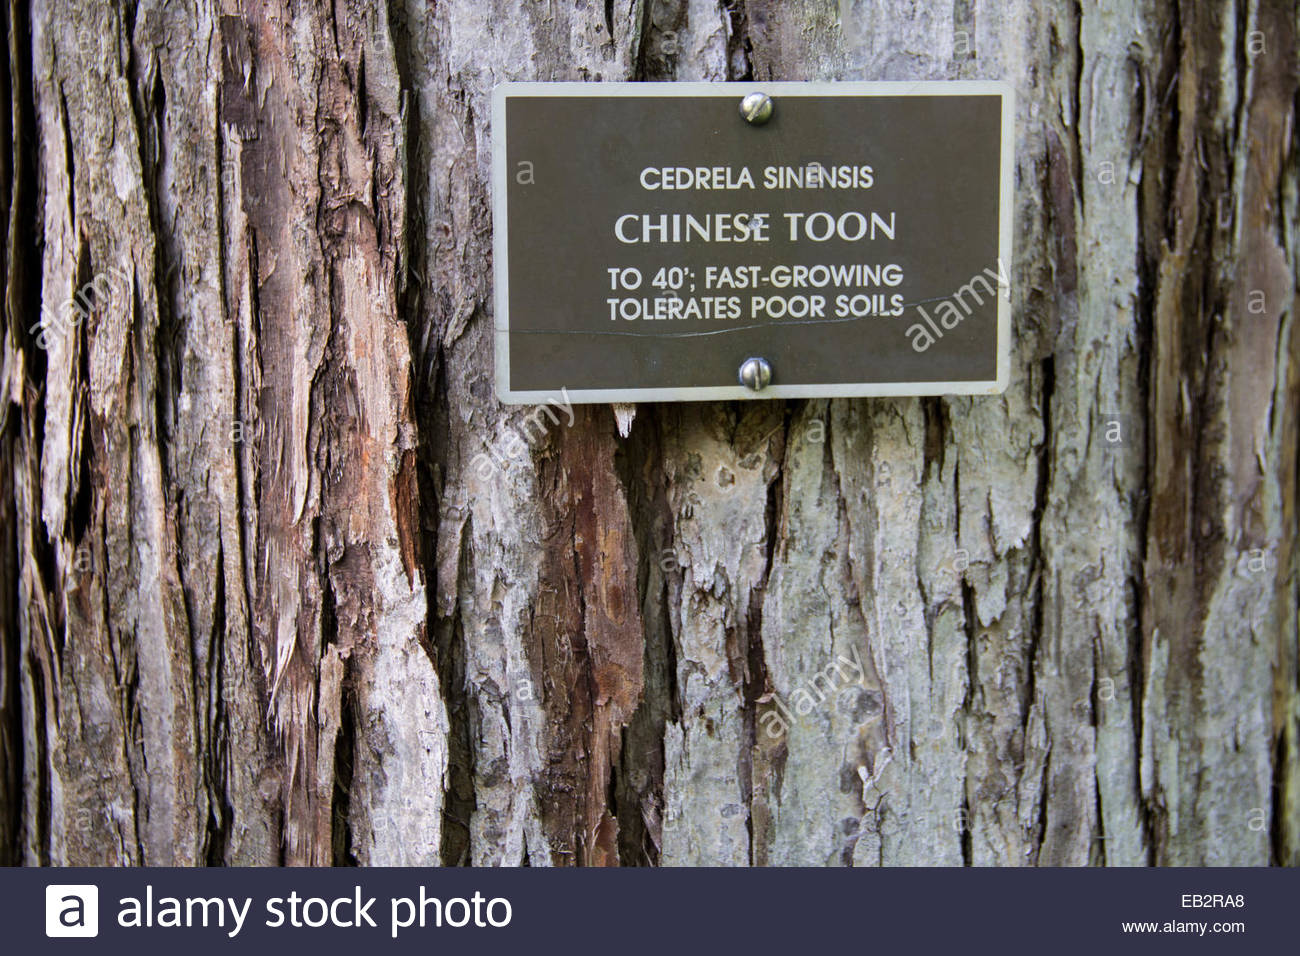 Close view of the bark and trunk of a Chinese toon tree, Cedrela sinensis. - Stock Image